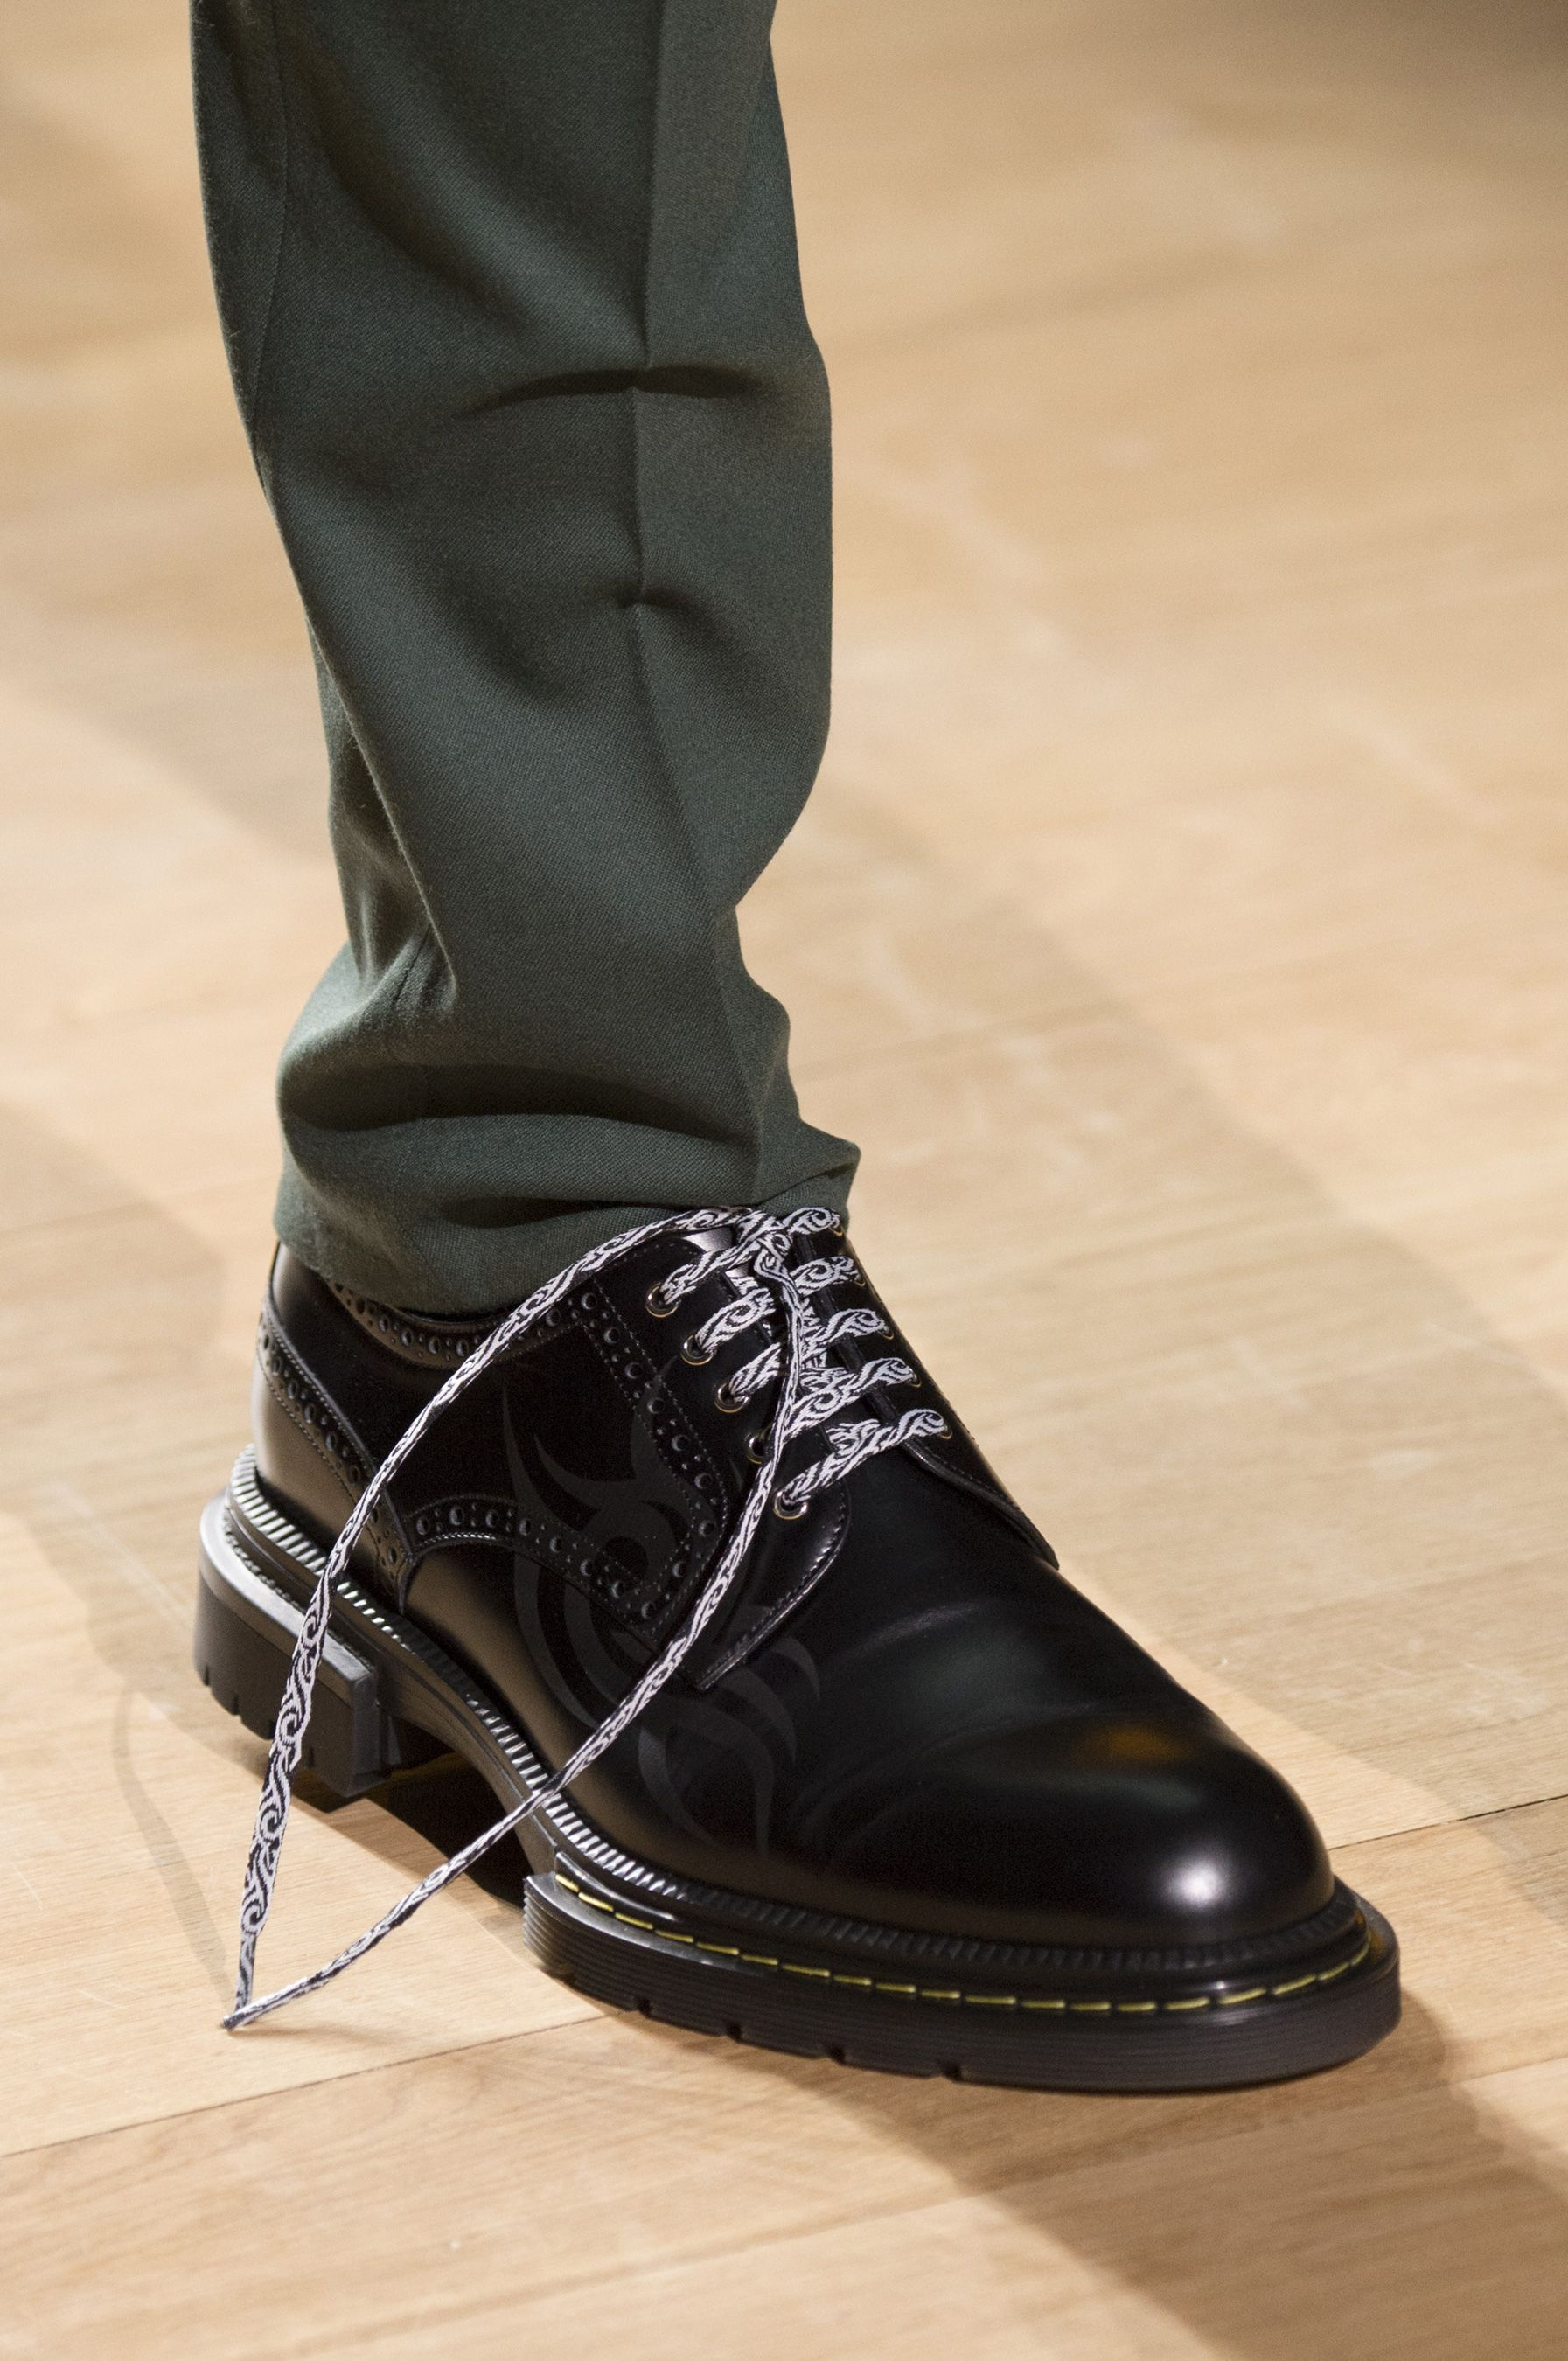 Dior Homme Fall 2018 Men s Fashion Show Details. All the Fall 2018 Paris  Menswear fashion shows in one place. Designer collections, PFWM, runway  reviews, ... 714c7007c38f